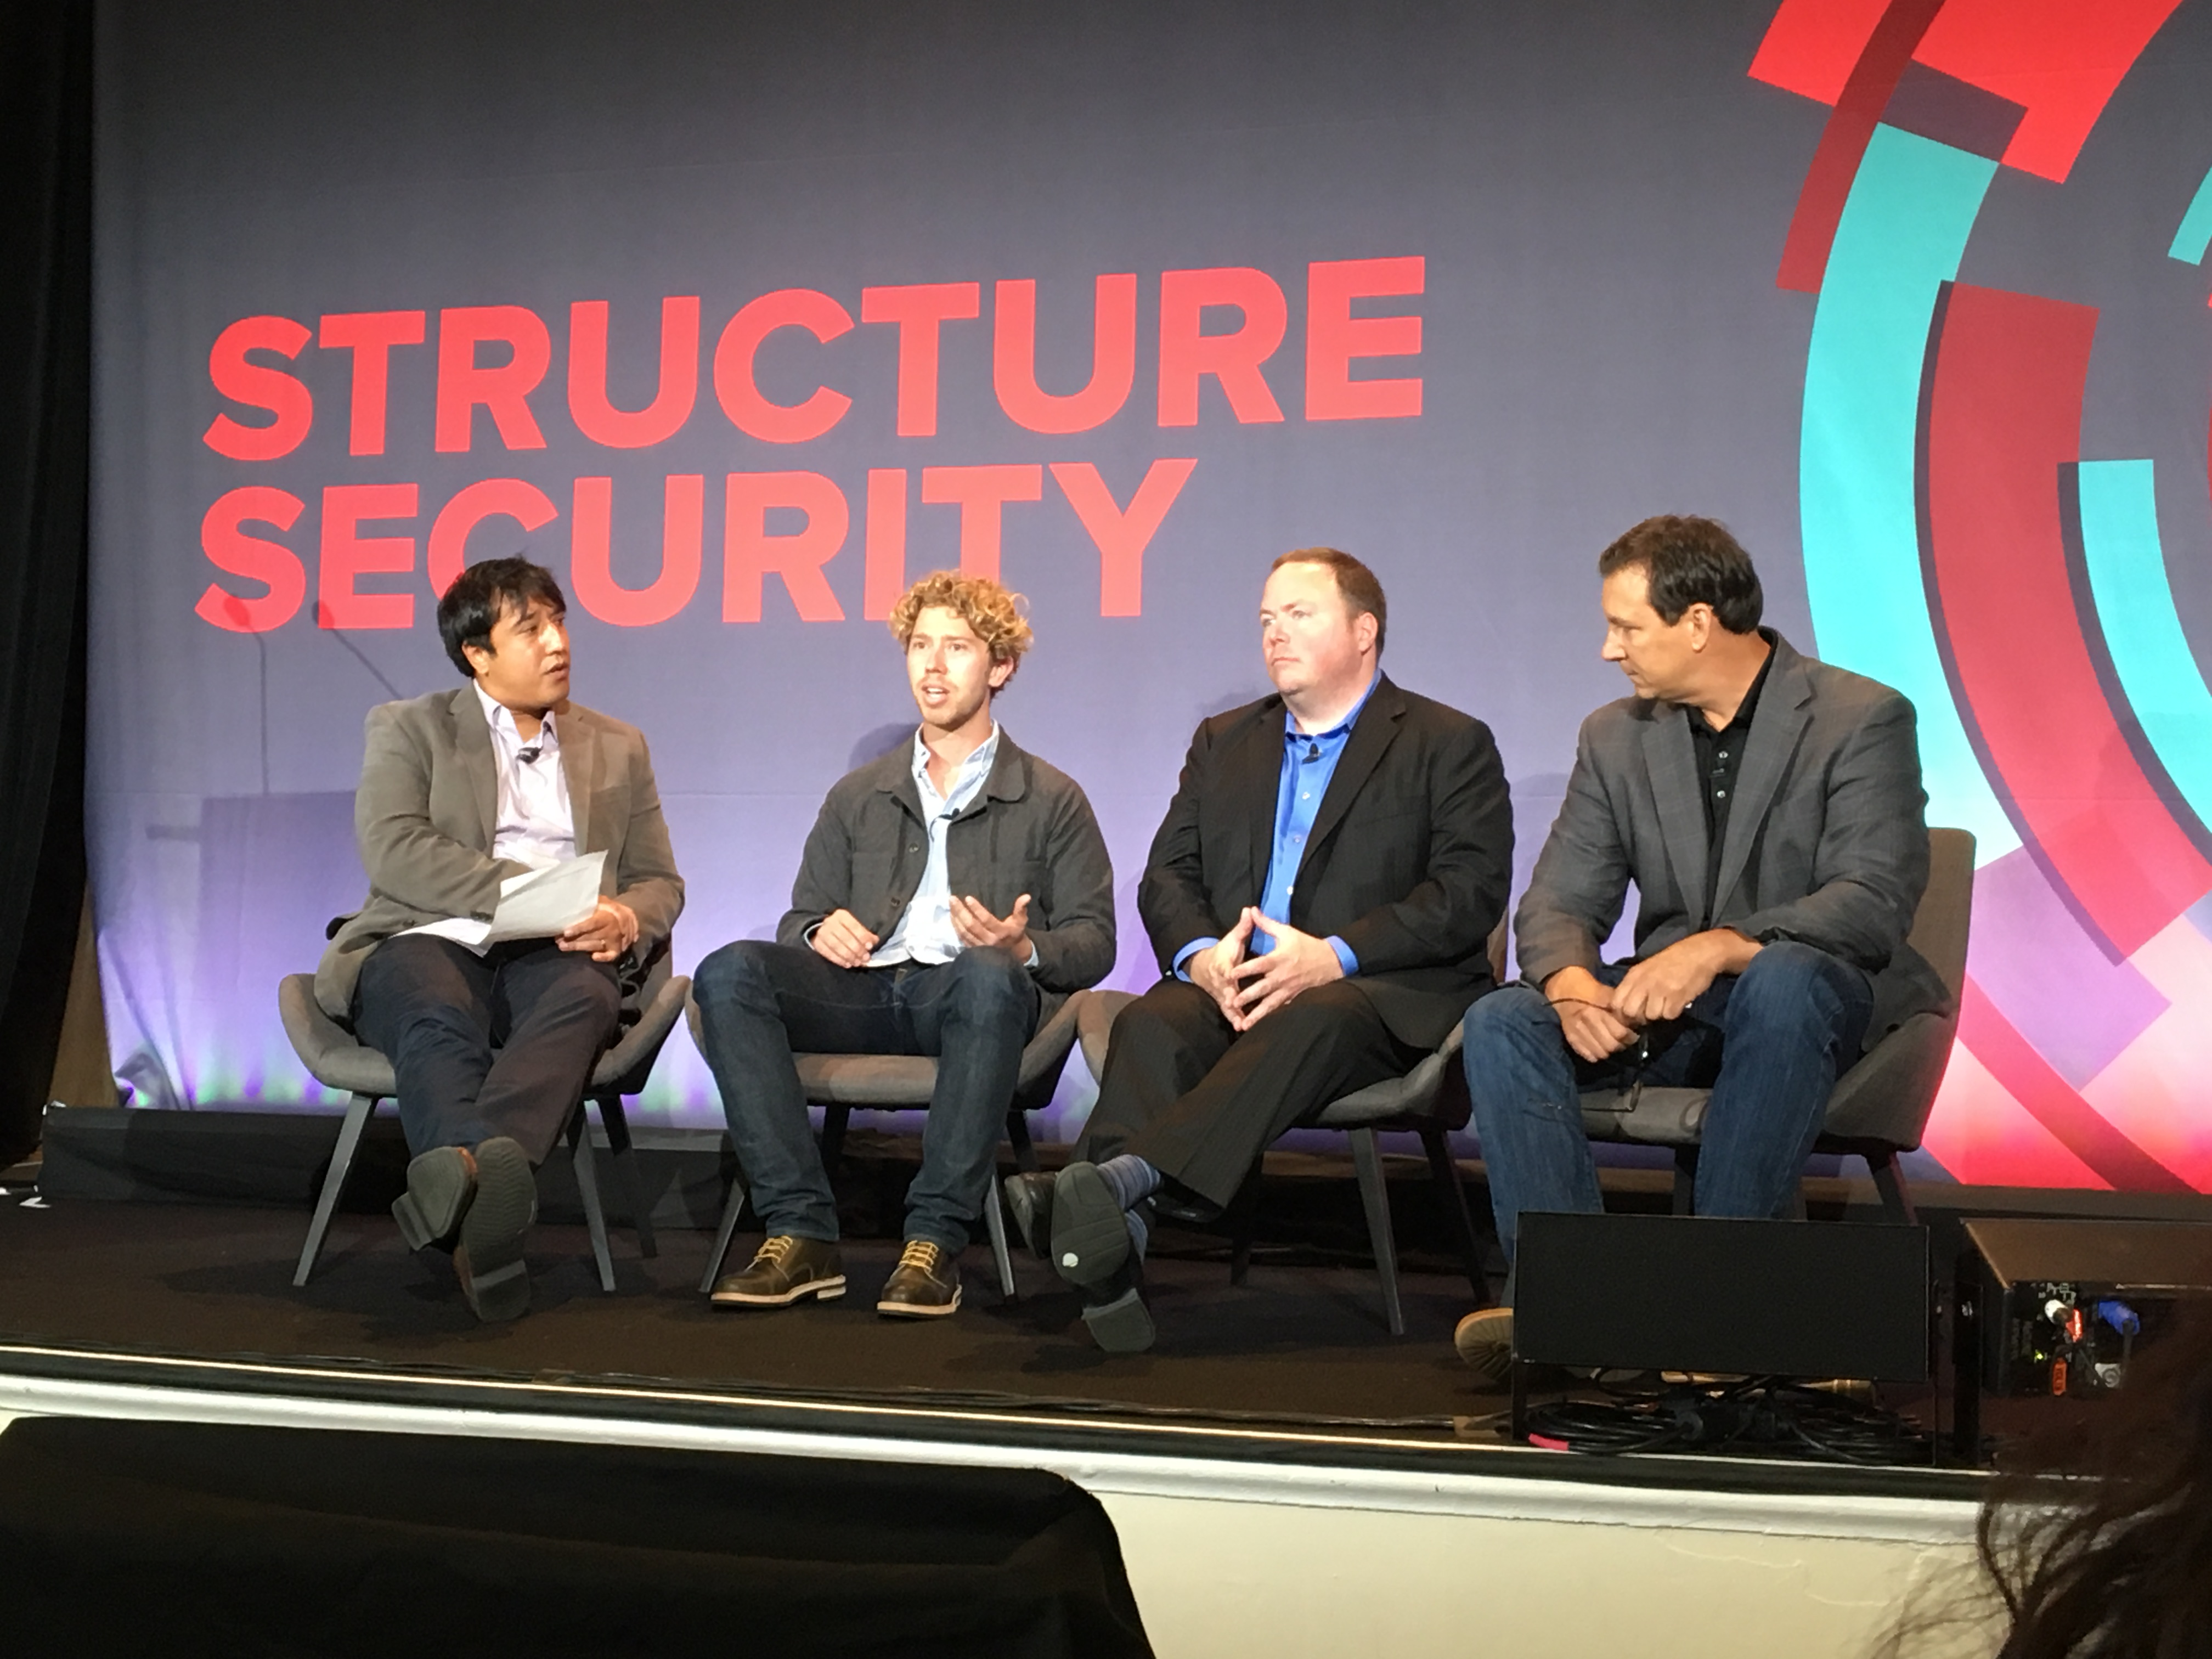 Fortune's Jonathan Vanian with Lookout's Kevin Mahaffey, CloudPassage's Carson Sweet and Mark Terenzoni of Sqrrl at Structure Security Conference on September 28, 2016 in San Francisco.